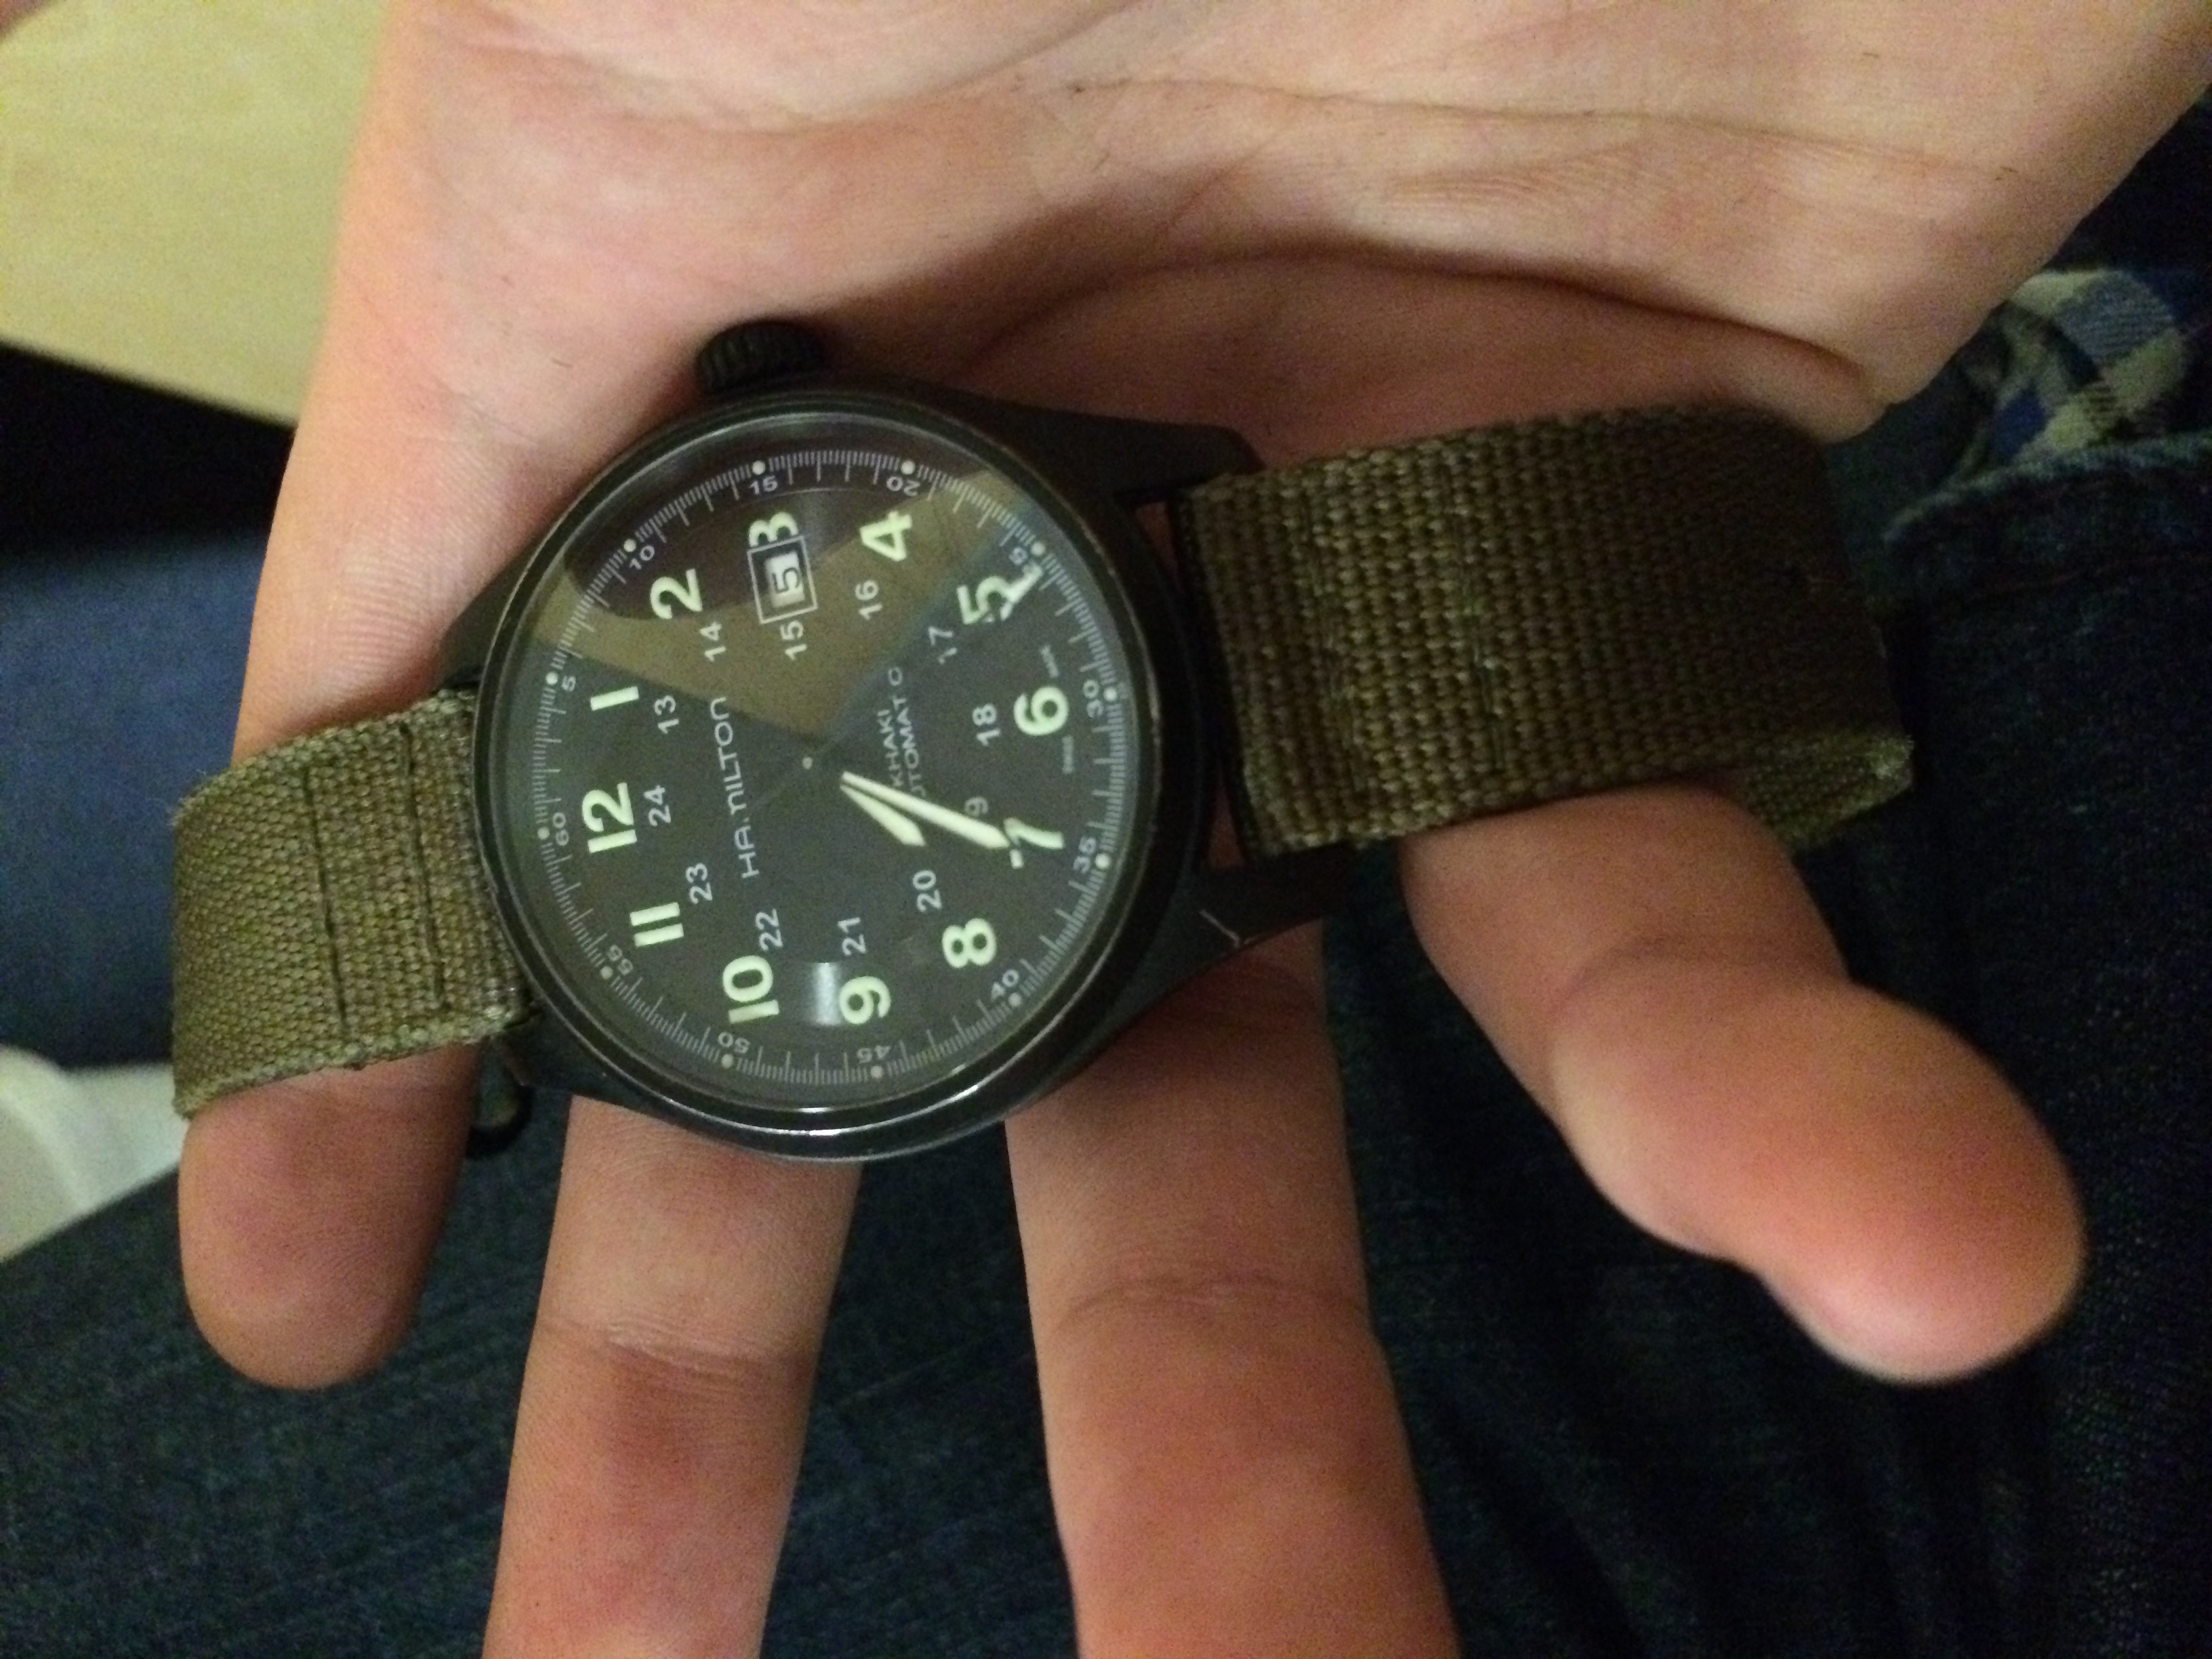 9bf0708ad84 This is an awesome watch and I have not been easy on it. Ive been through  the wars with it and almost forgot the thing was on my wrist most of the ...